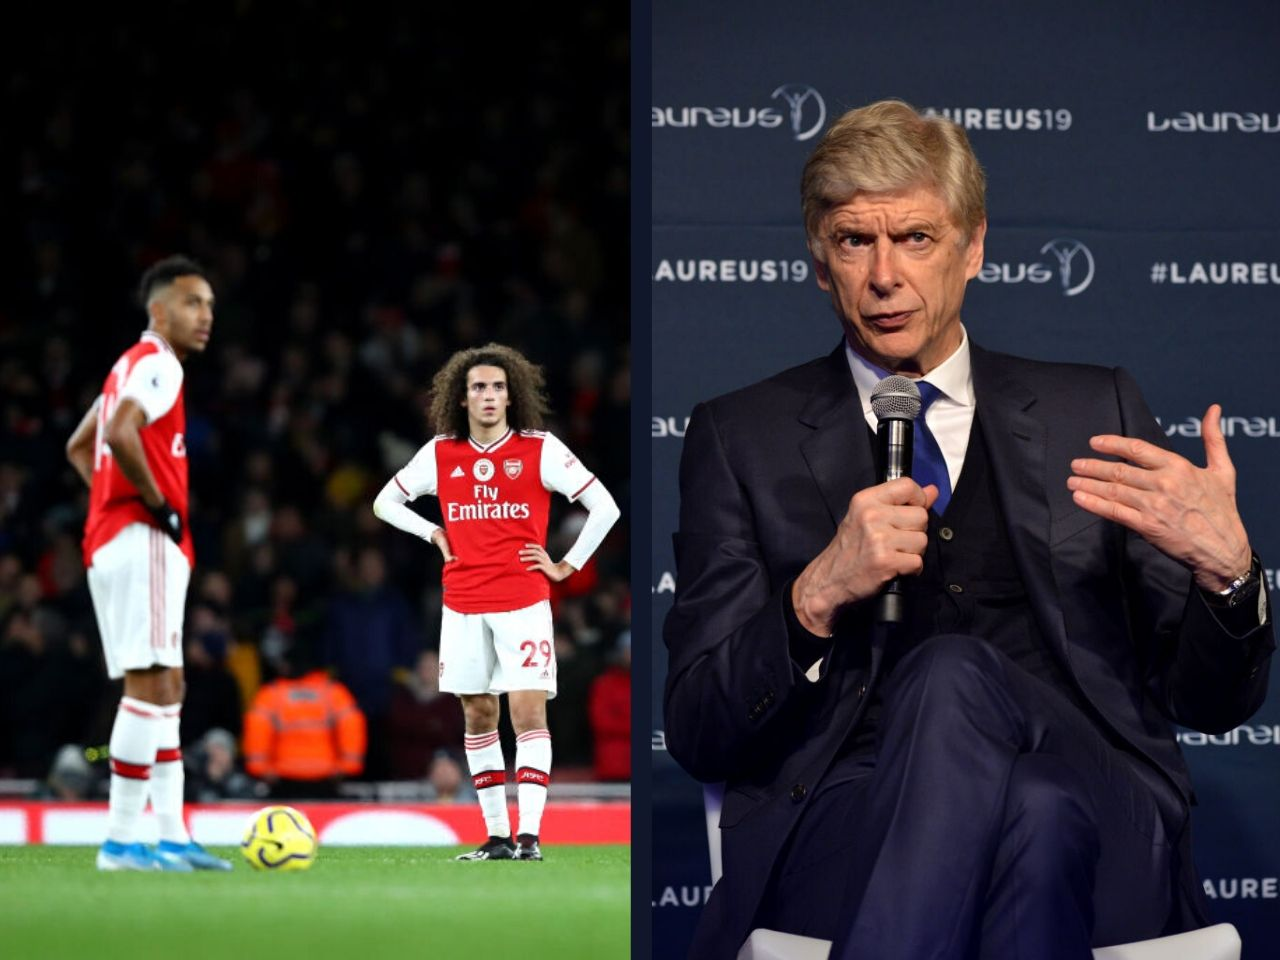 Arsene Wenger, Arsenal, Premier League